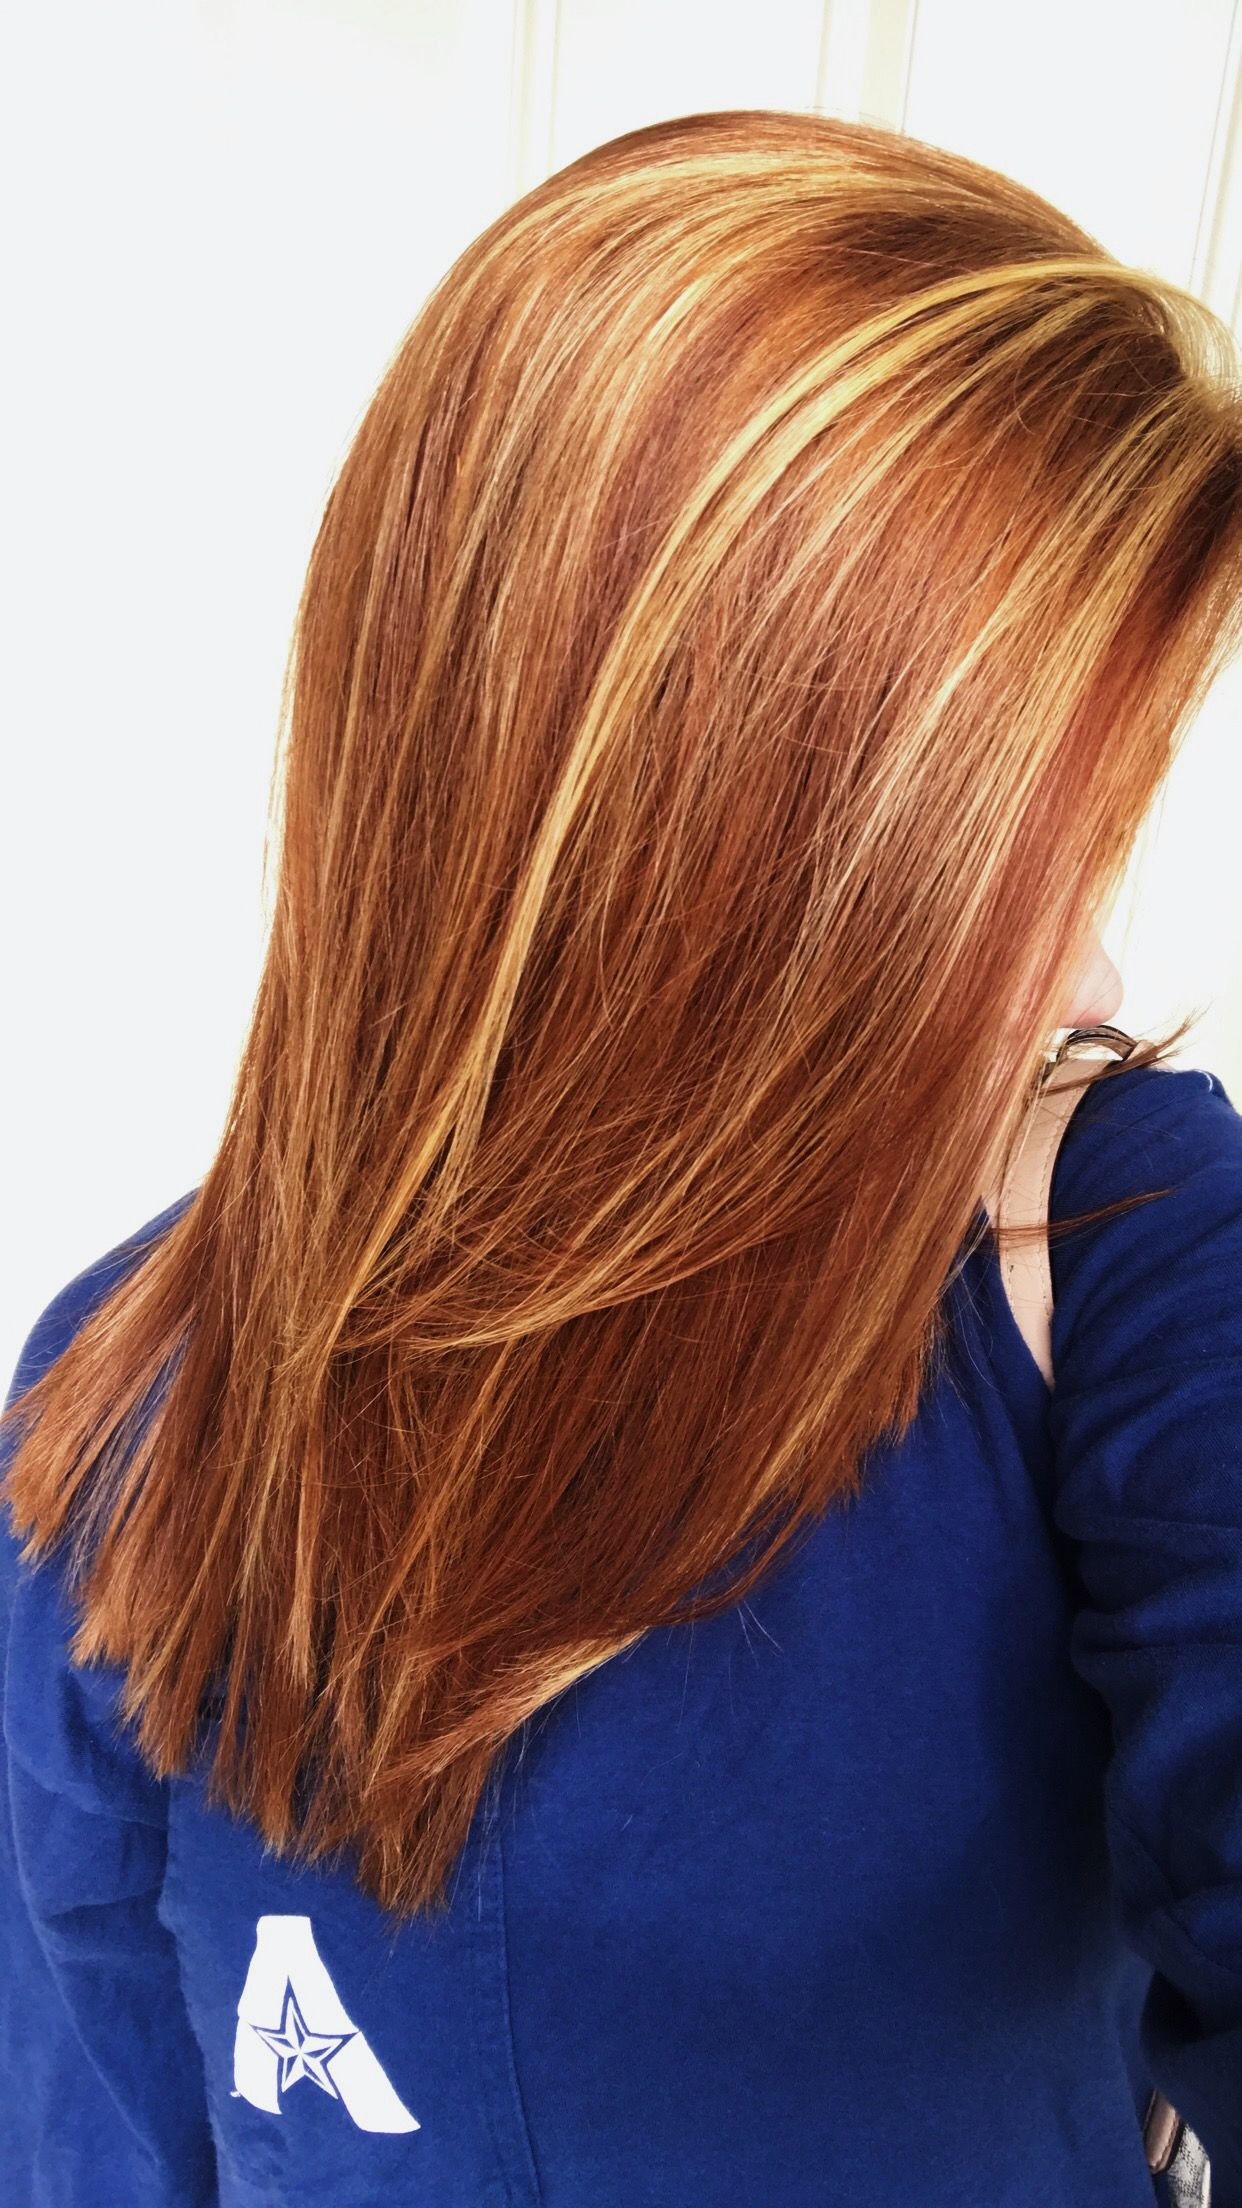 Natural Red Hair With Auburn Lowlights Blonde Highlights Medium Length Red Blonde Hair Natural Red Hair Red Hair With Highlights